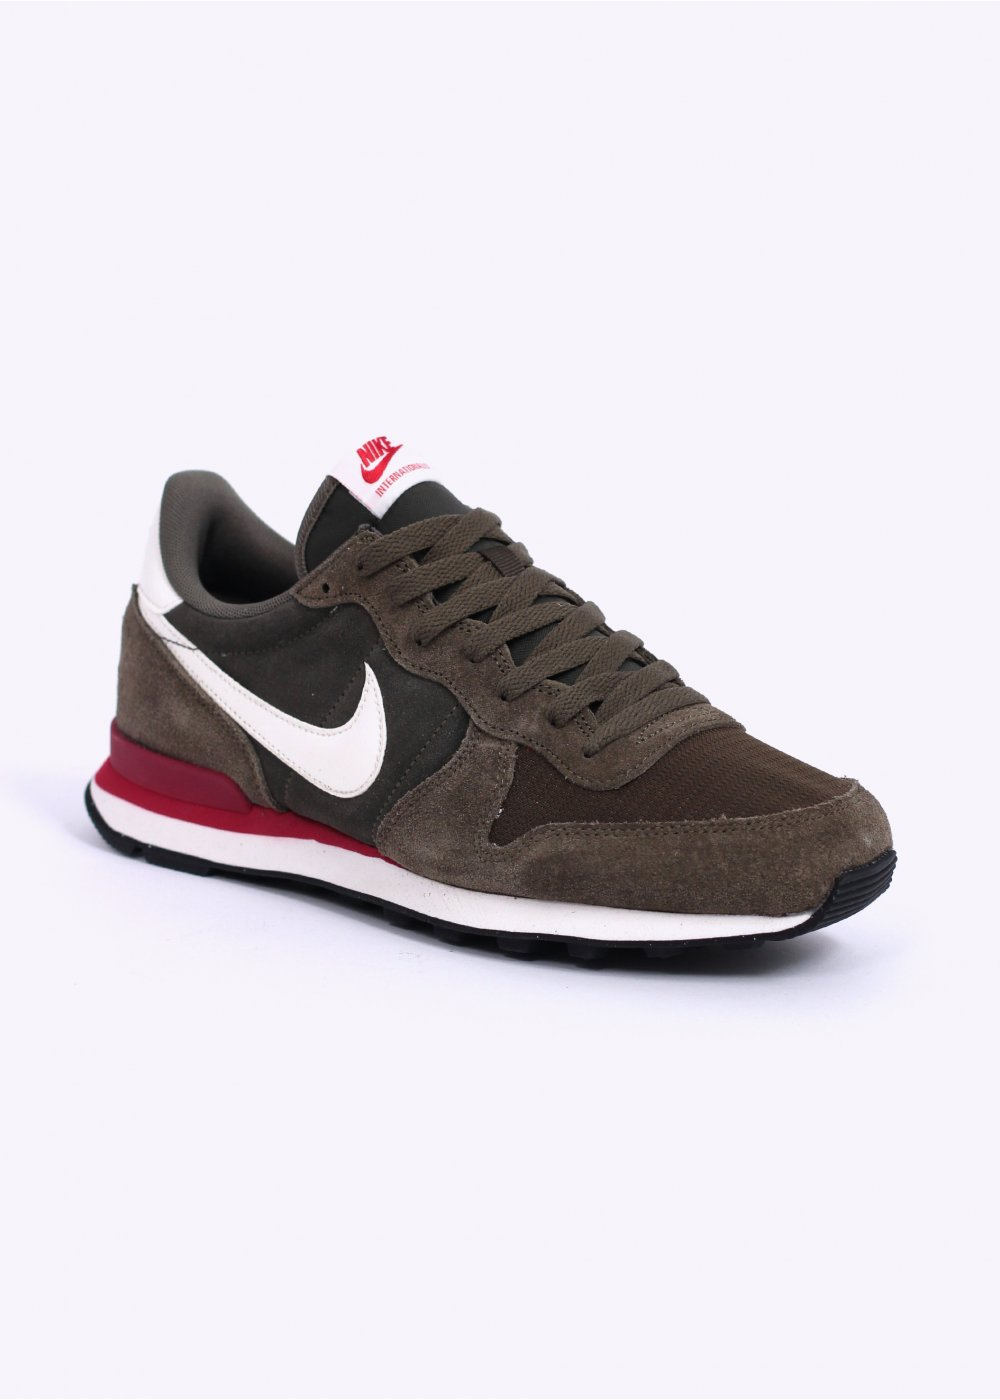 nike internationalist leather khaki sail olive. Black Bedroom Furniture Sets. Home Design Ideas